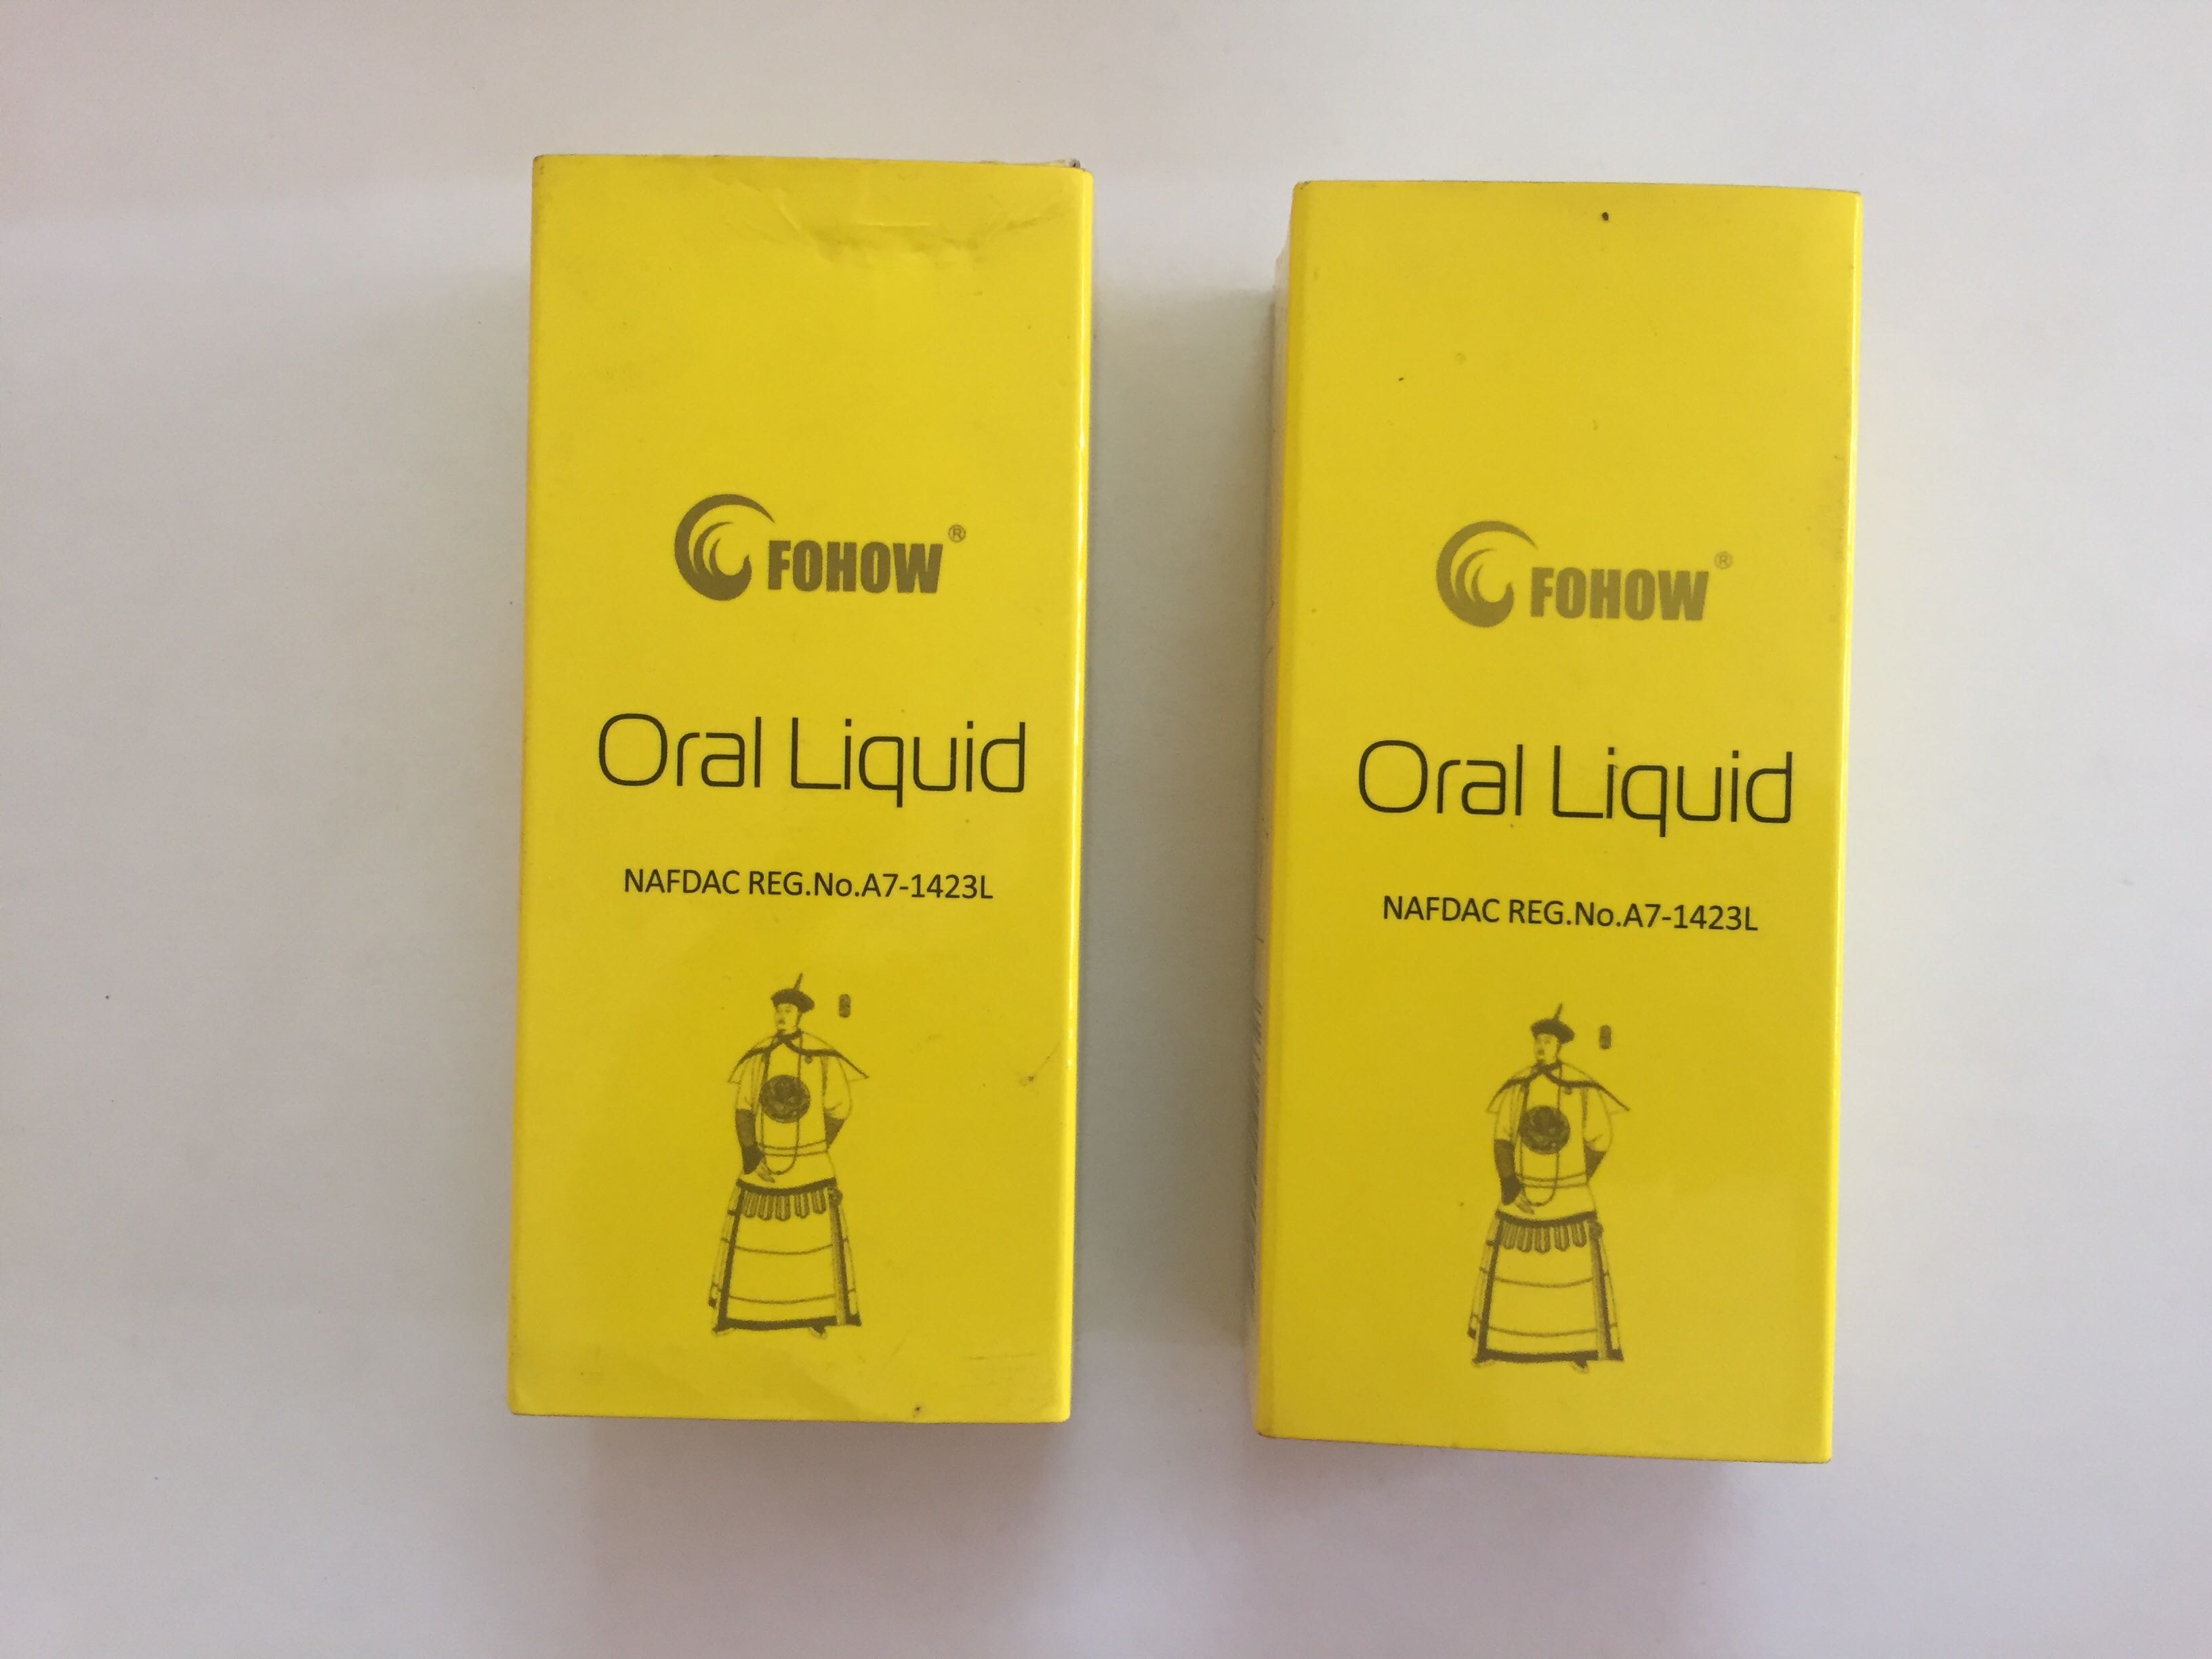 Fohow Oral liquid